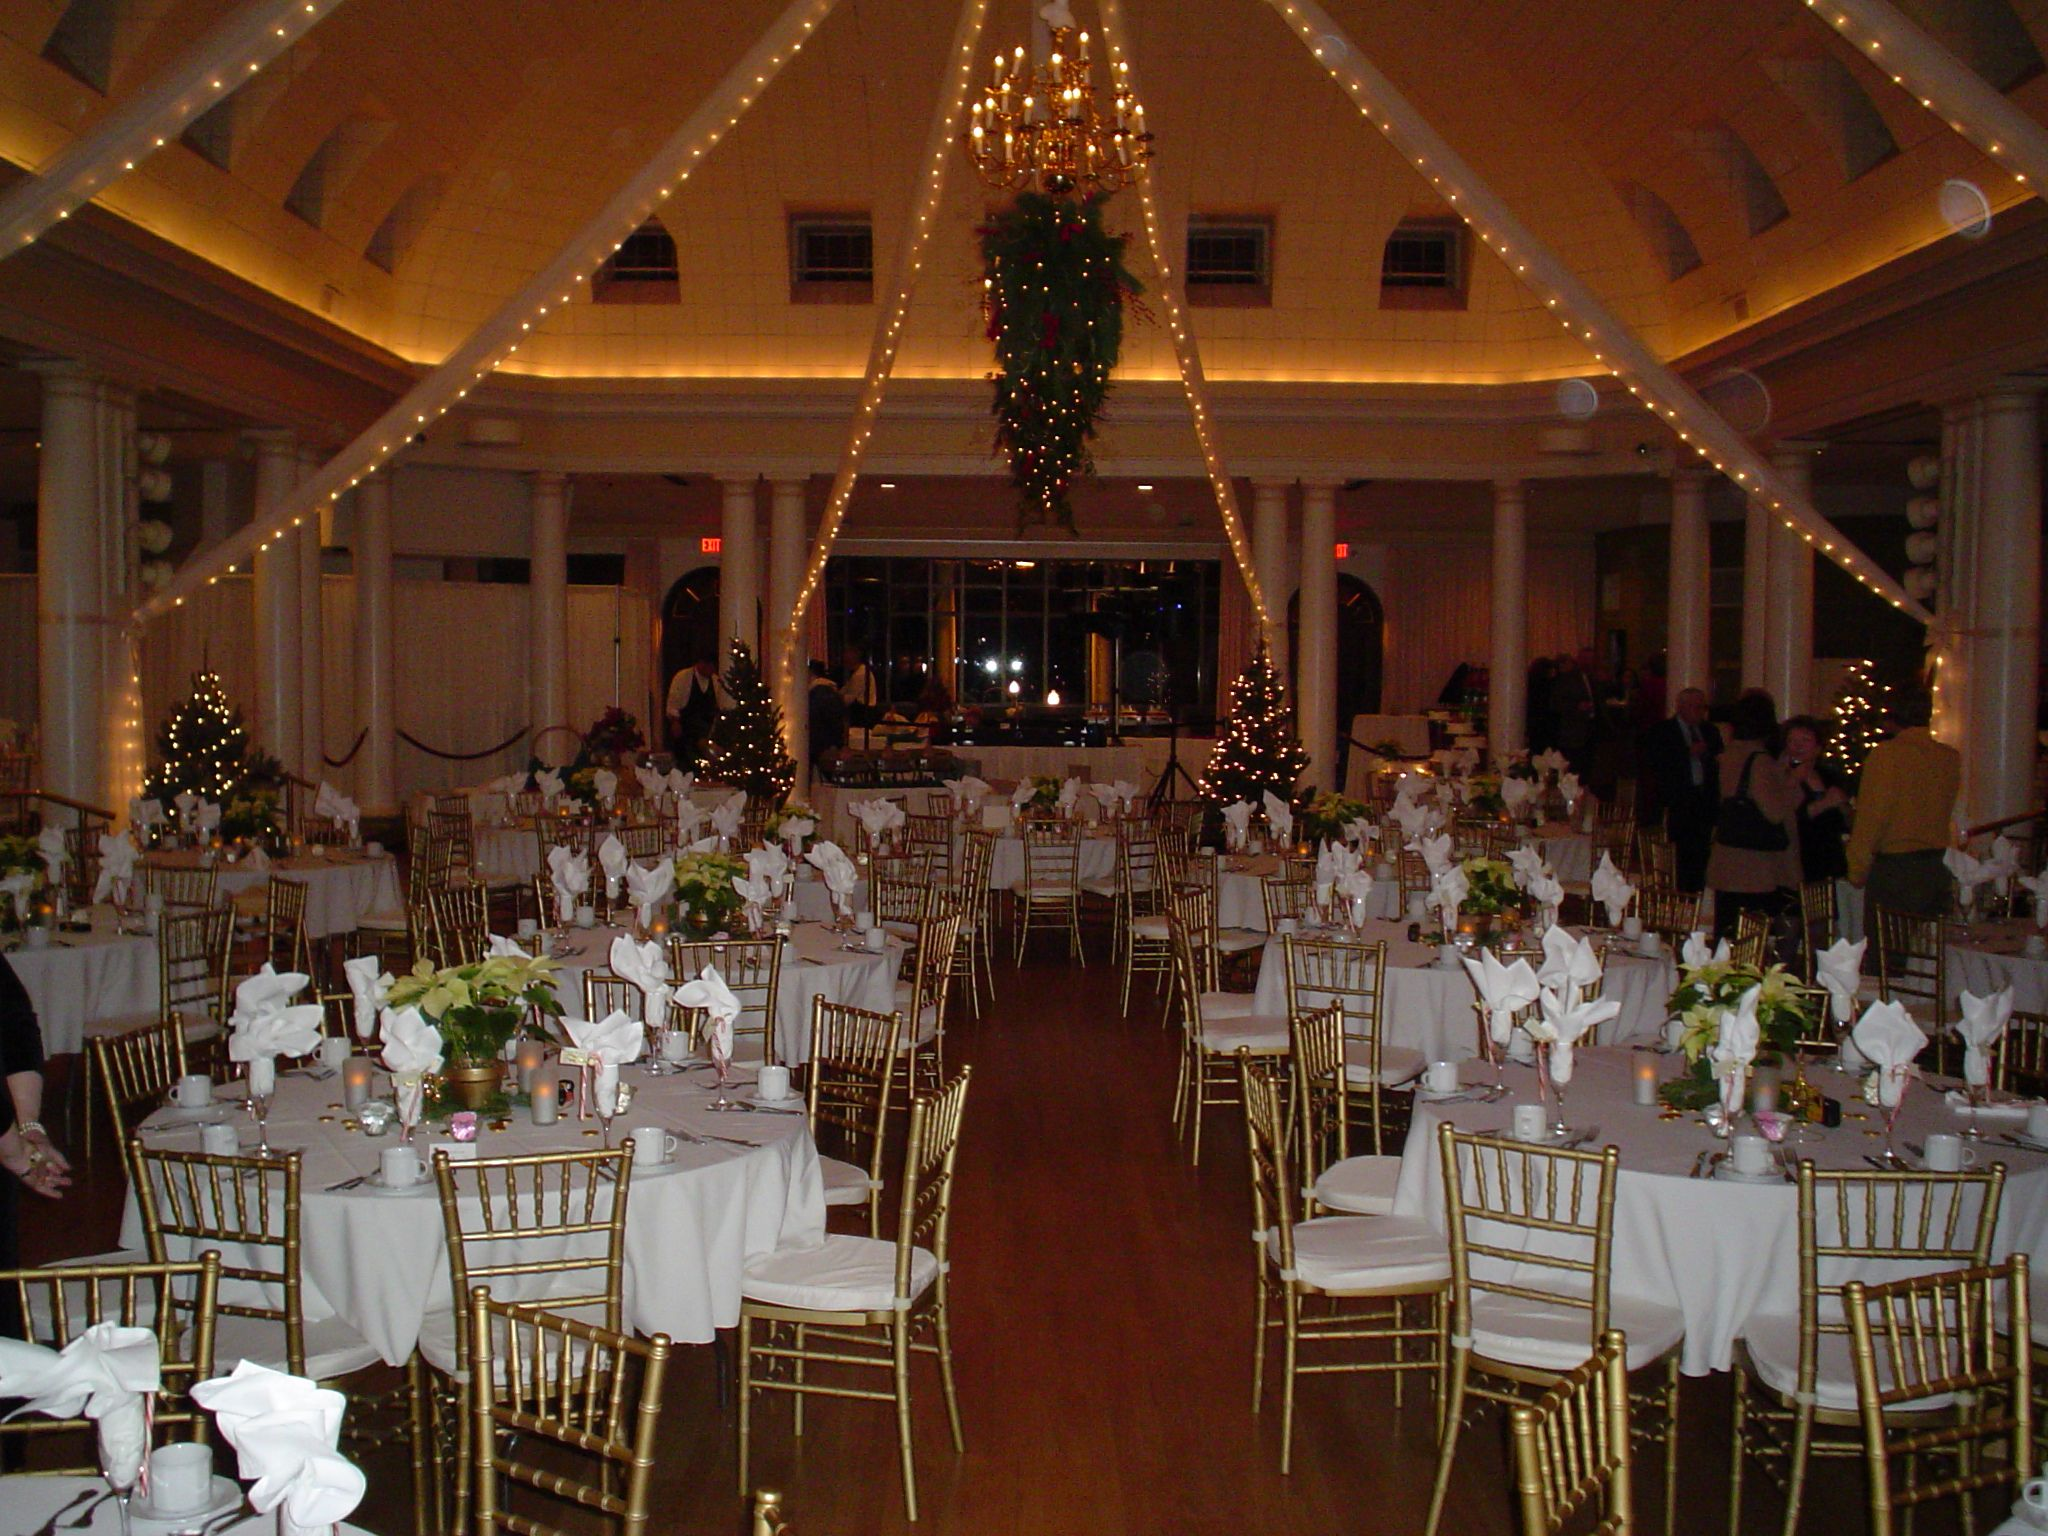 Wedding Ceremony And Reception At The Elegant And Historic Riviera